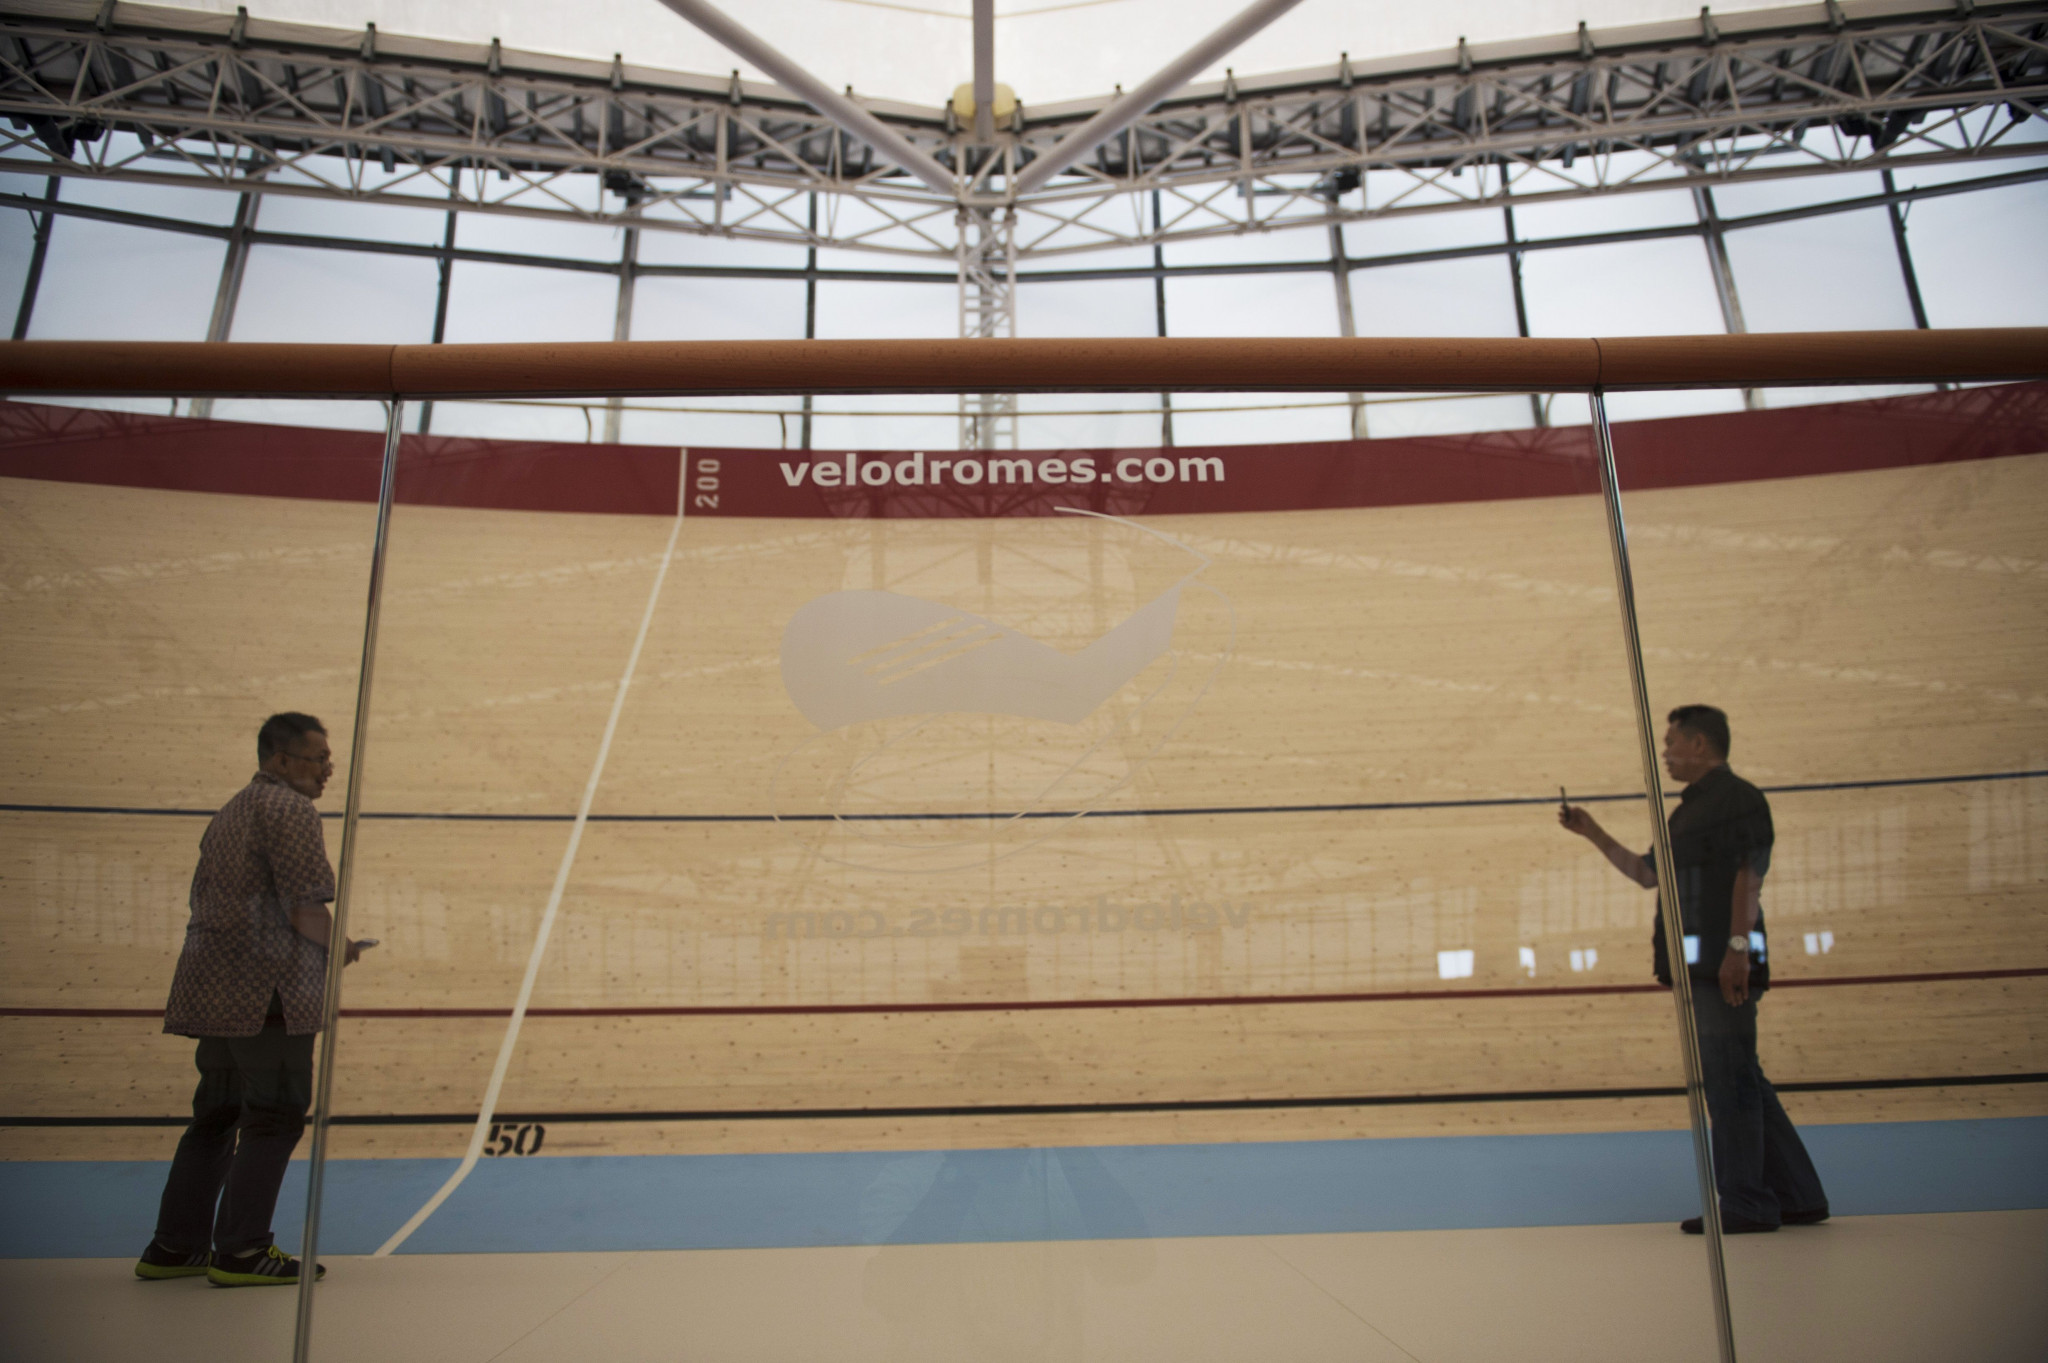 The velodrome has been constructed for the Asian Games ©Getty Images